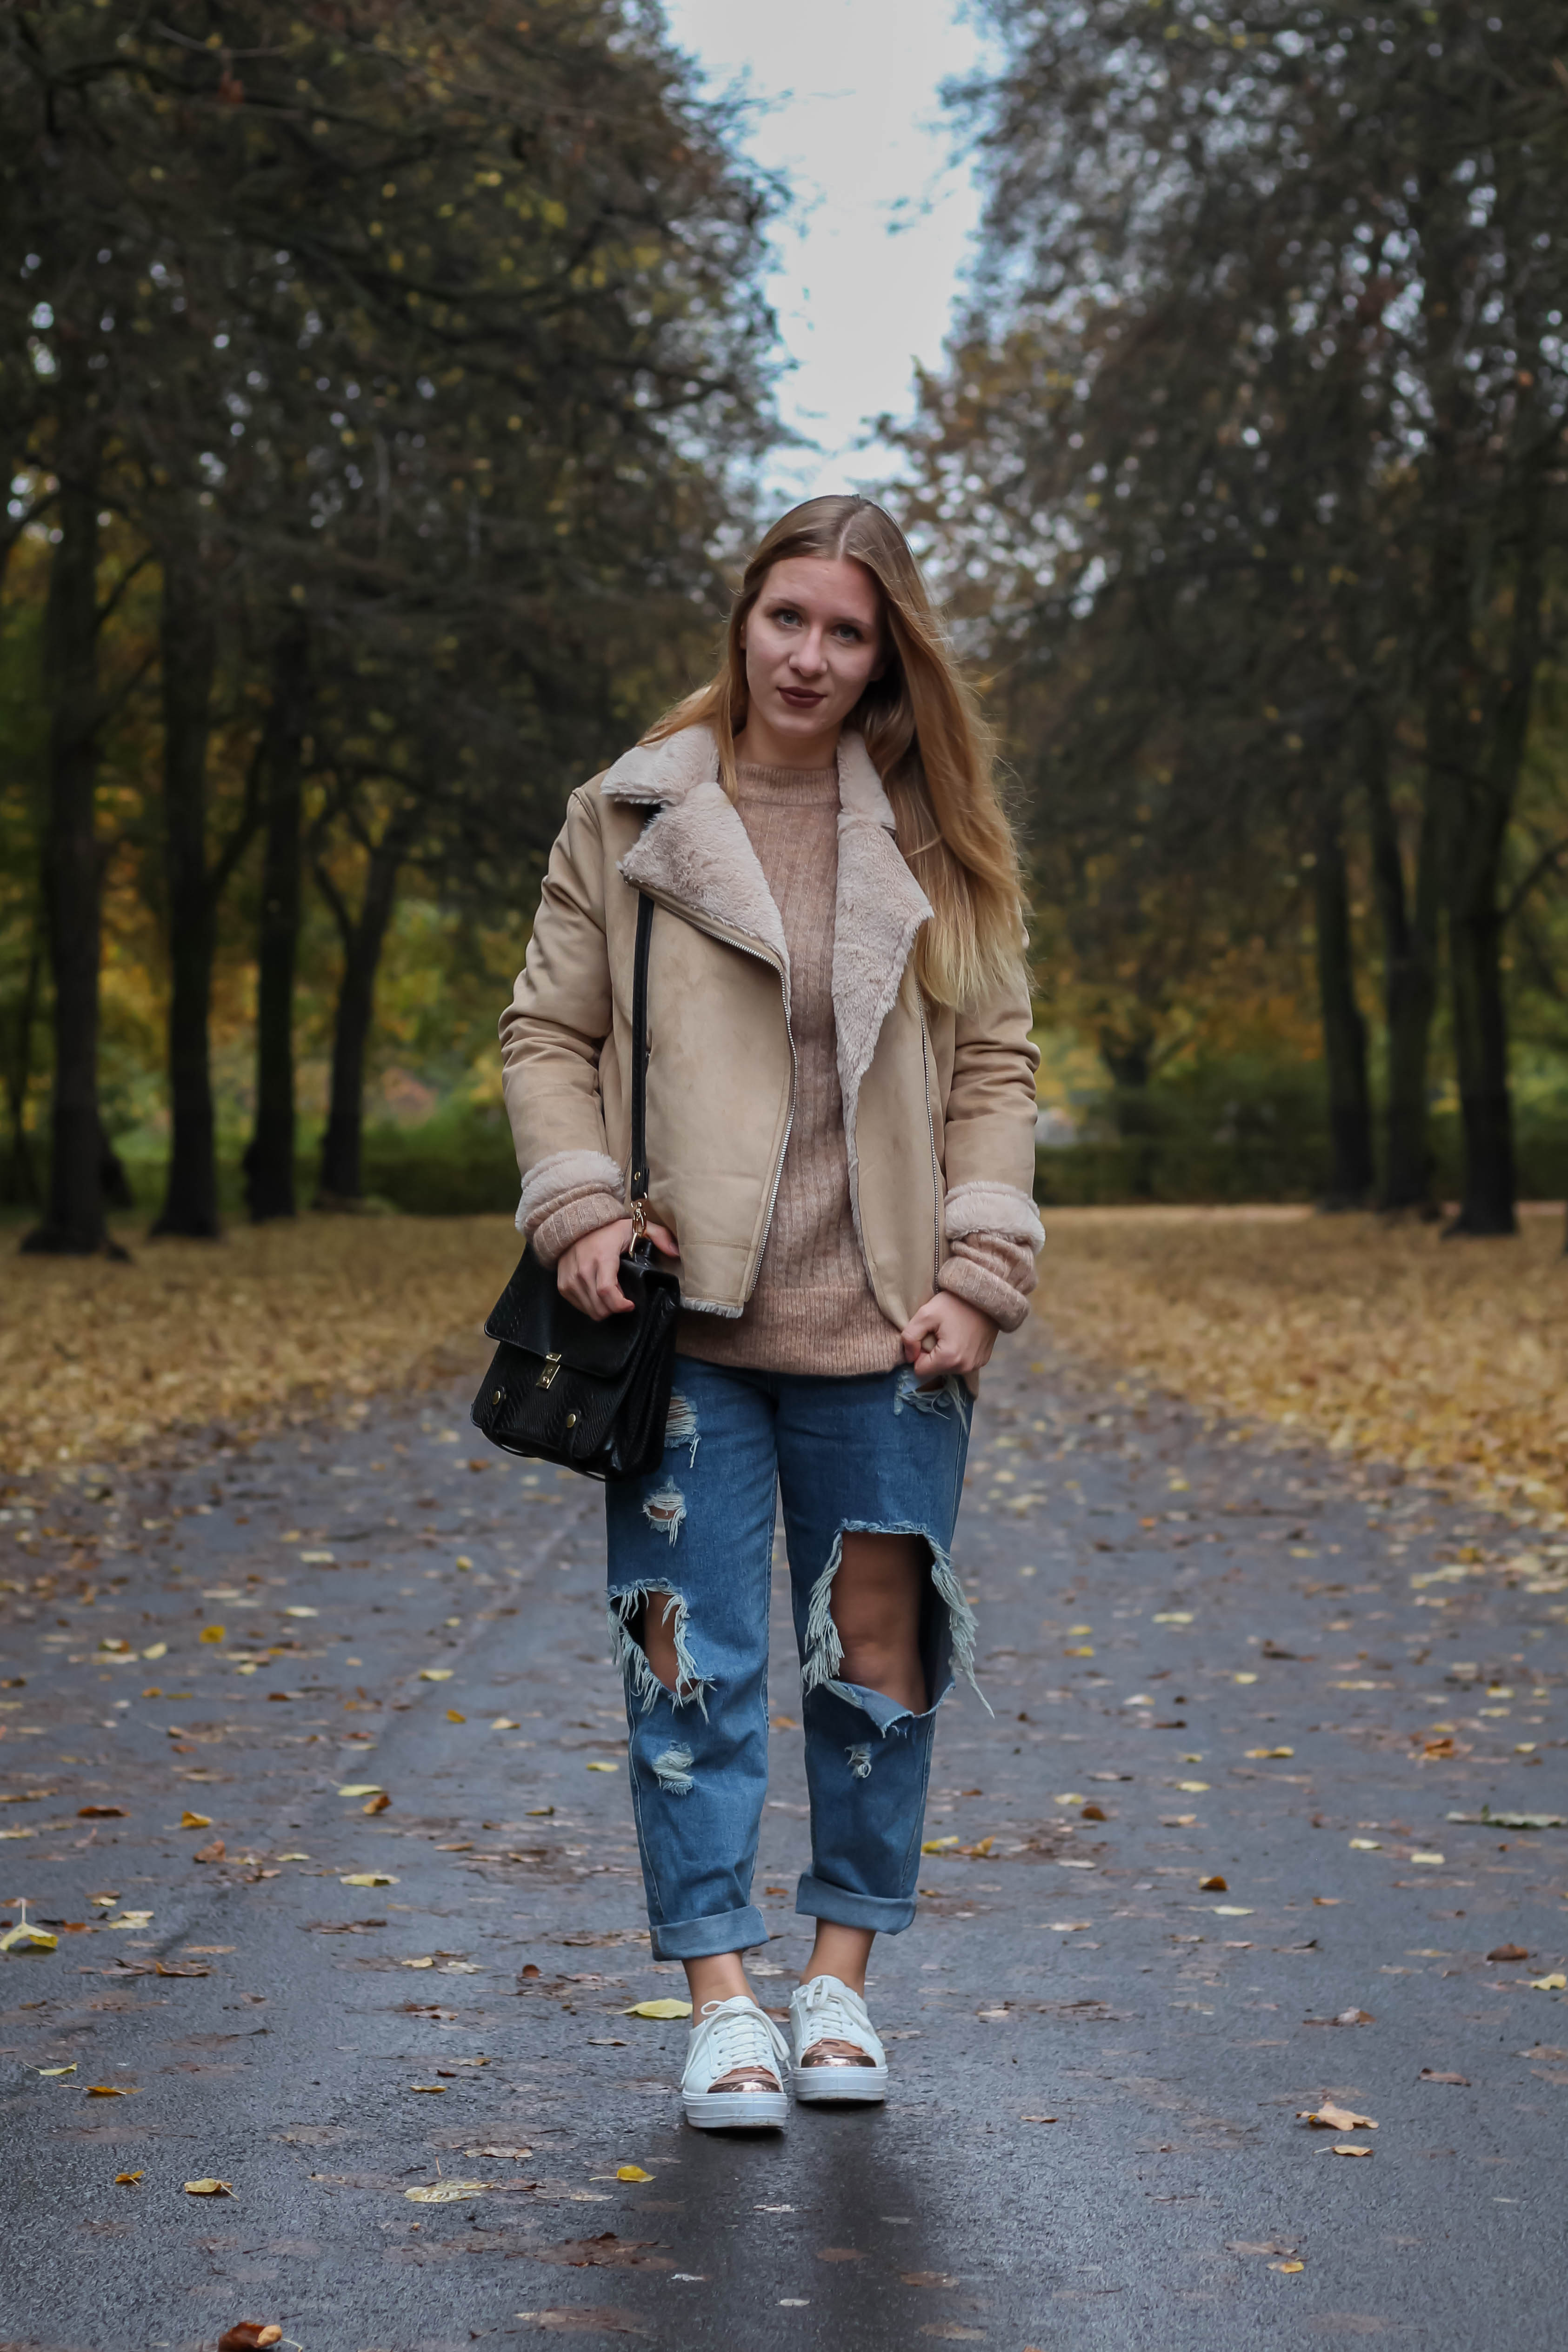 Felljacke Mom Jeans Asos Herbst Outfit Fashionblog